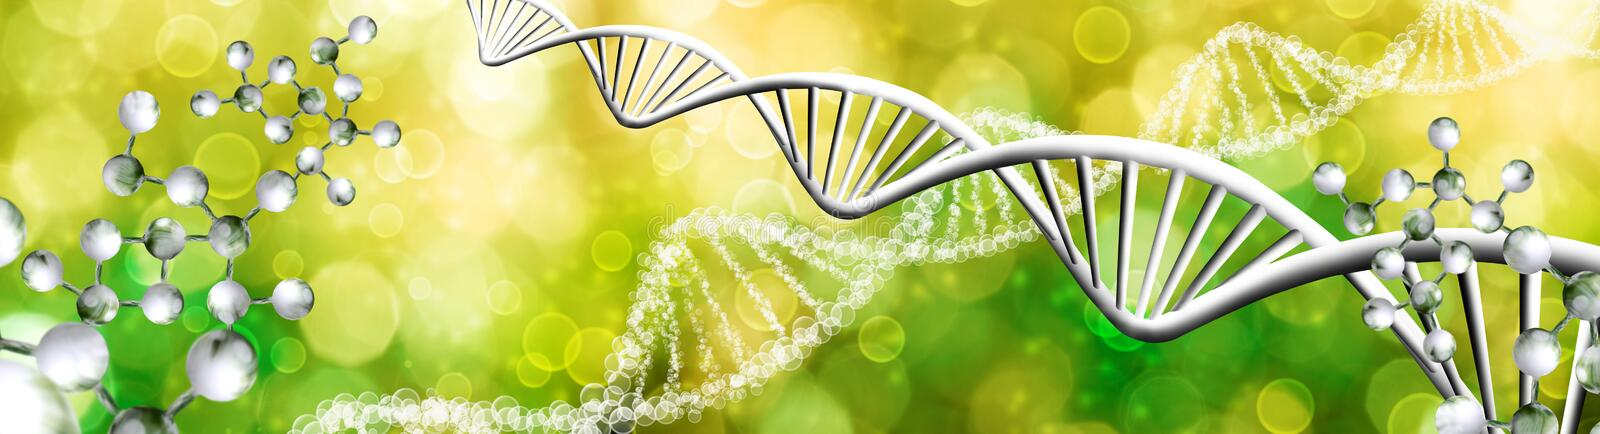 Abstract image of dna chain closeup. Abstract image of dna chain close up,3D illustration vector illustration